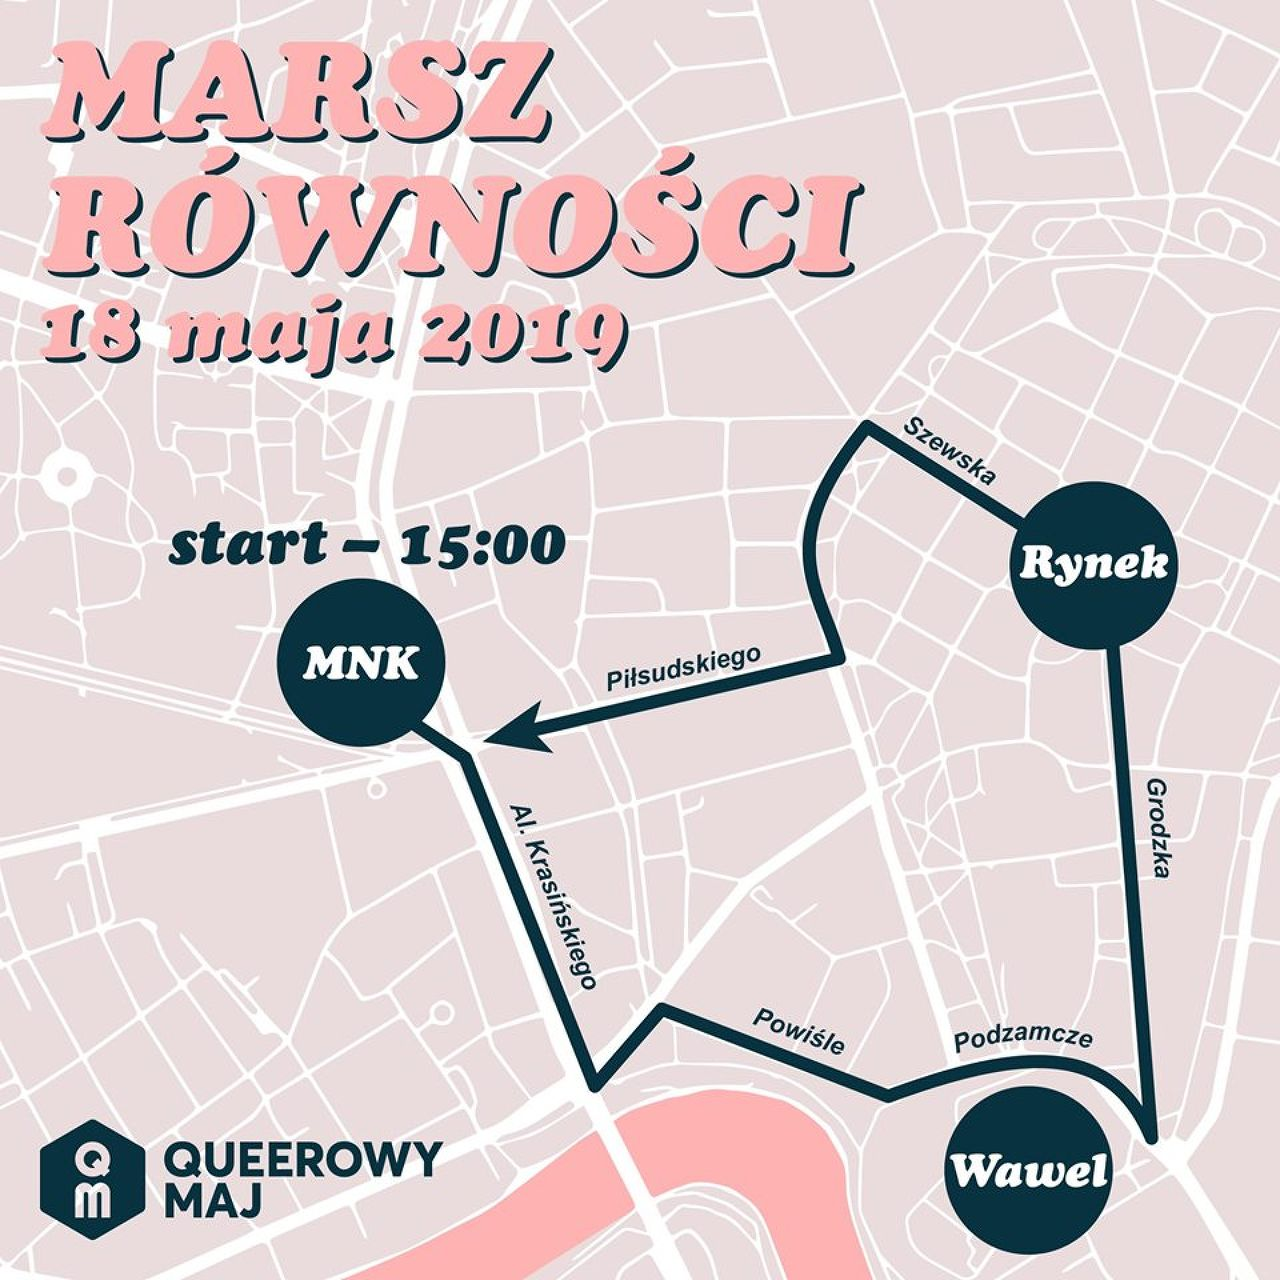 Krakow Equality March 2019: Let's make a paradise